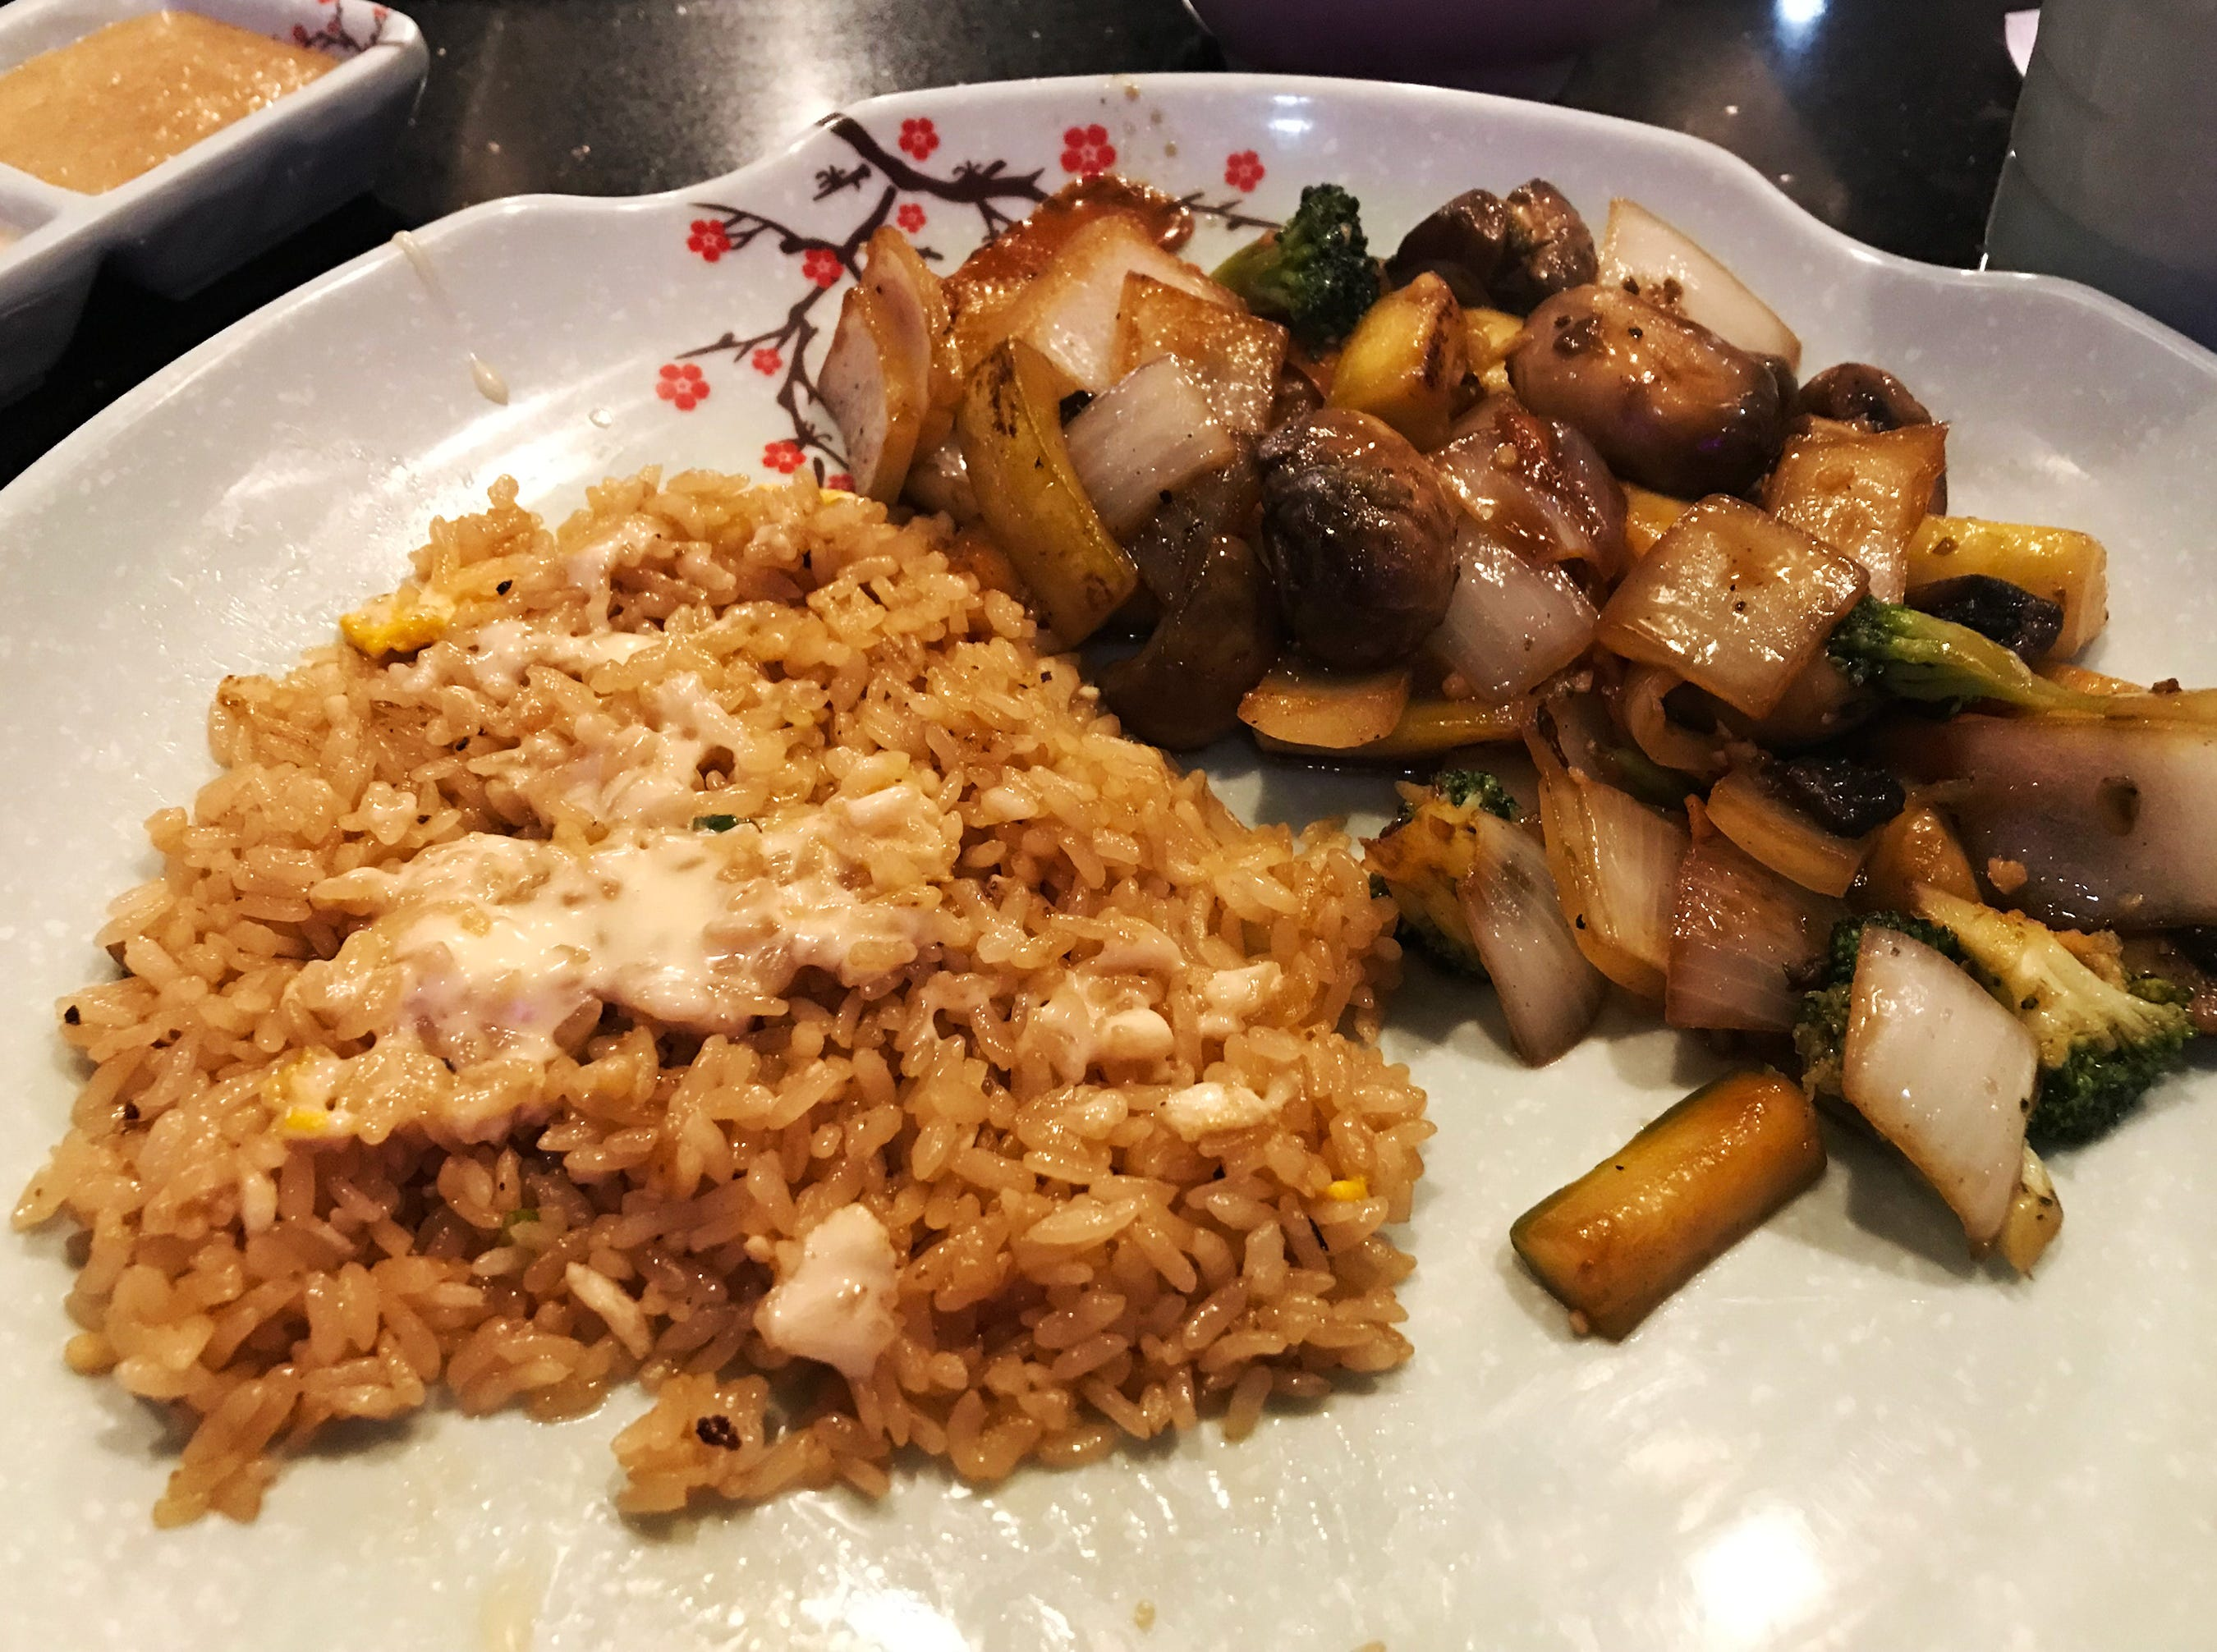 Fried rice and grilled vegetables at the Umi Sushi And Steak House, Thursday, January 31, 2019, in Sheboygan, Wis.